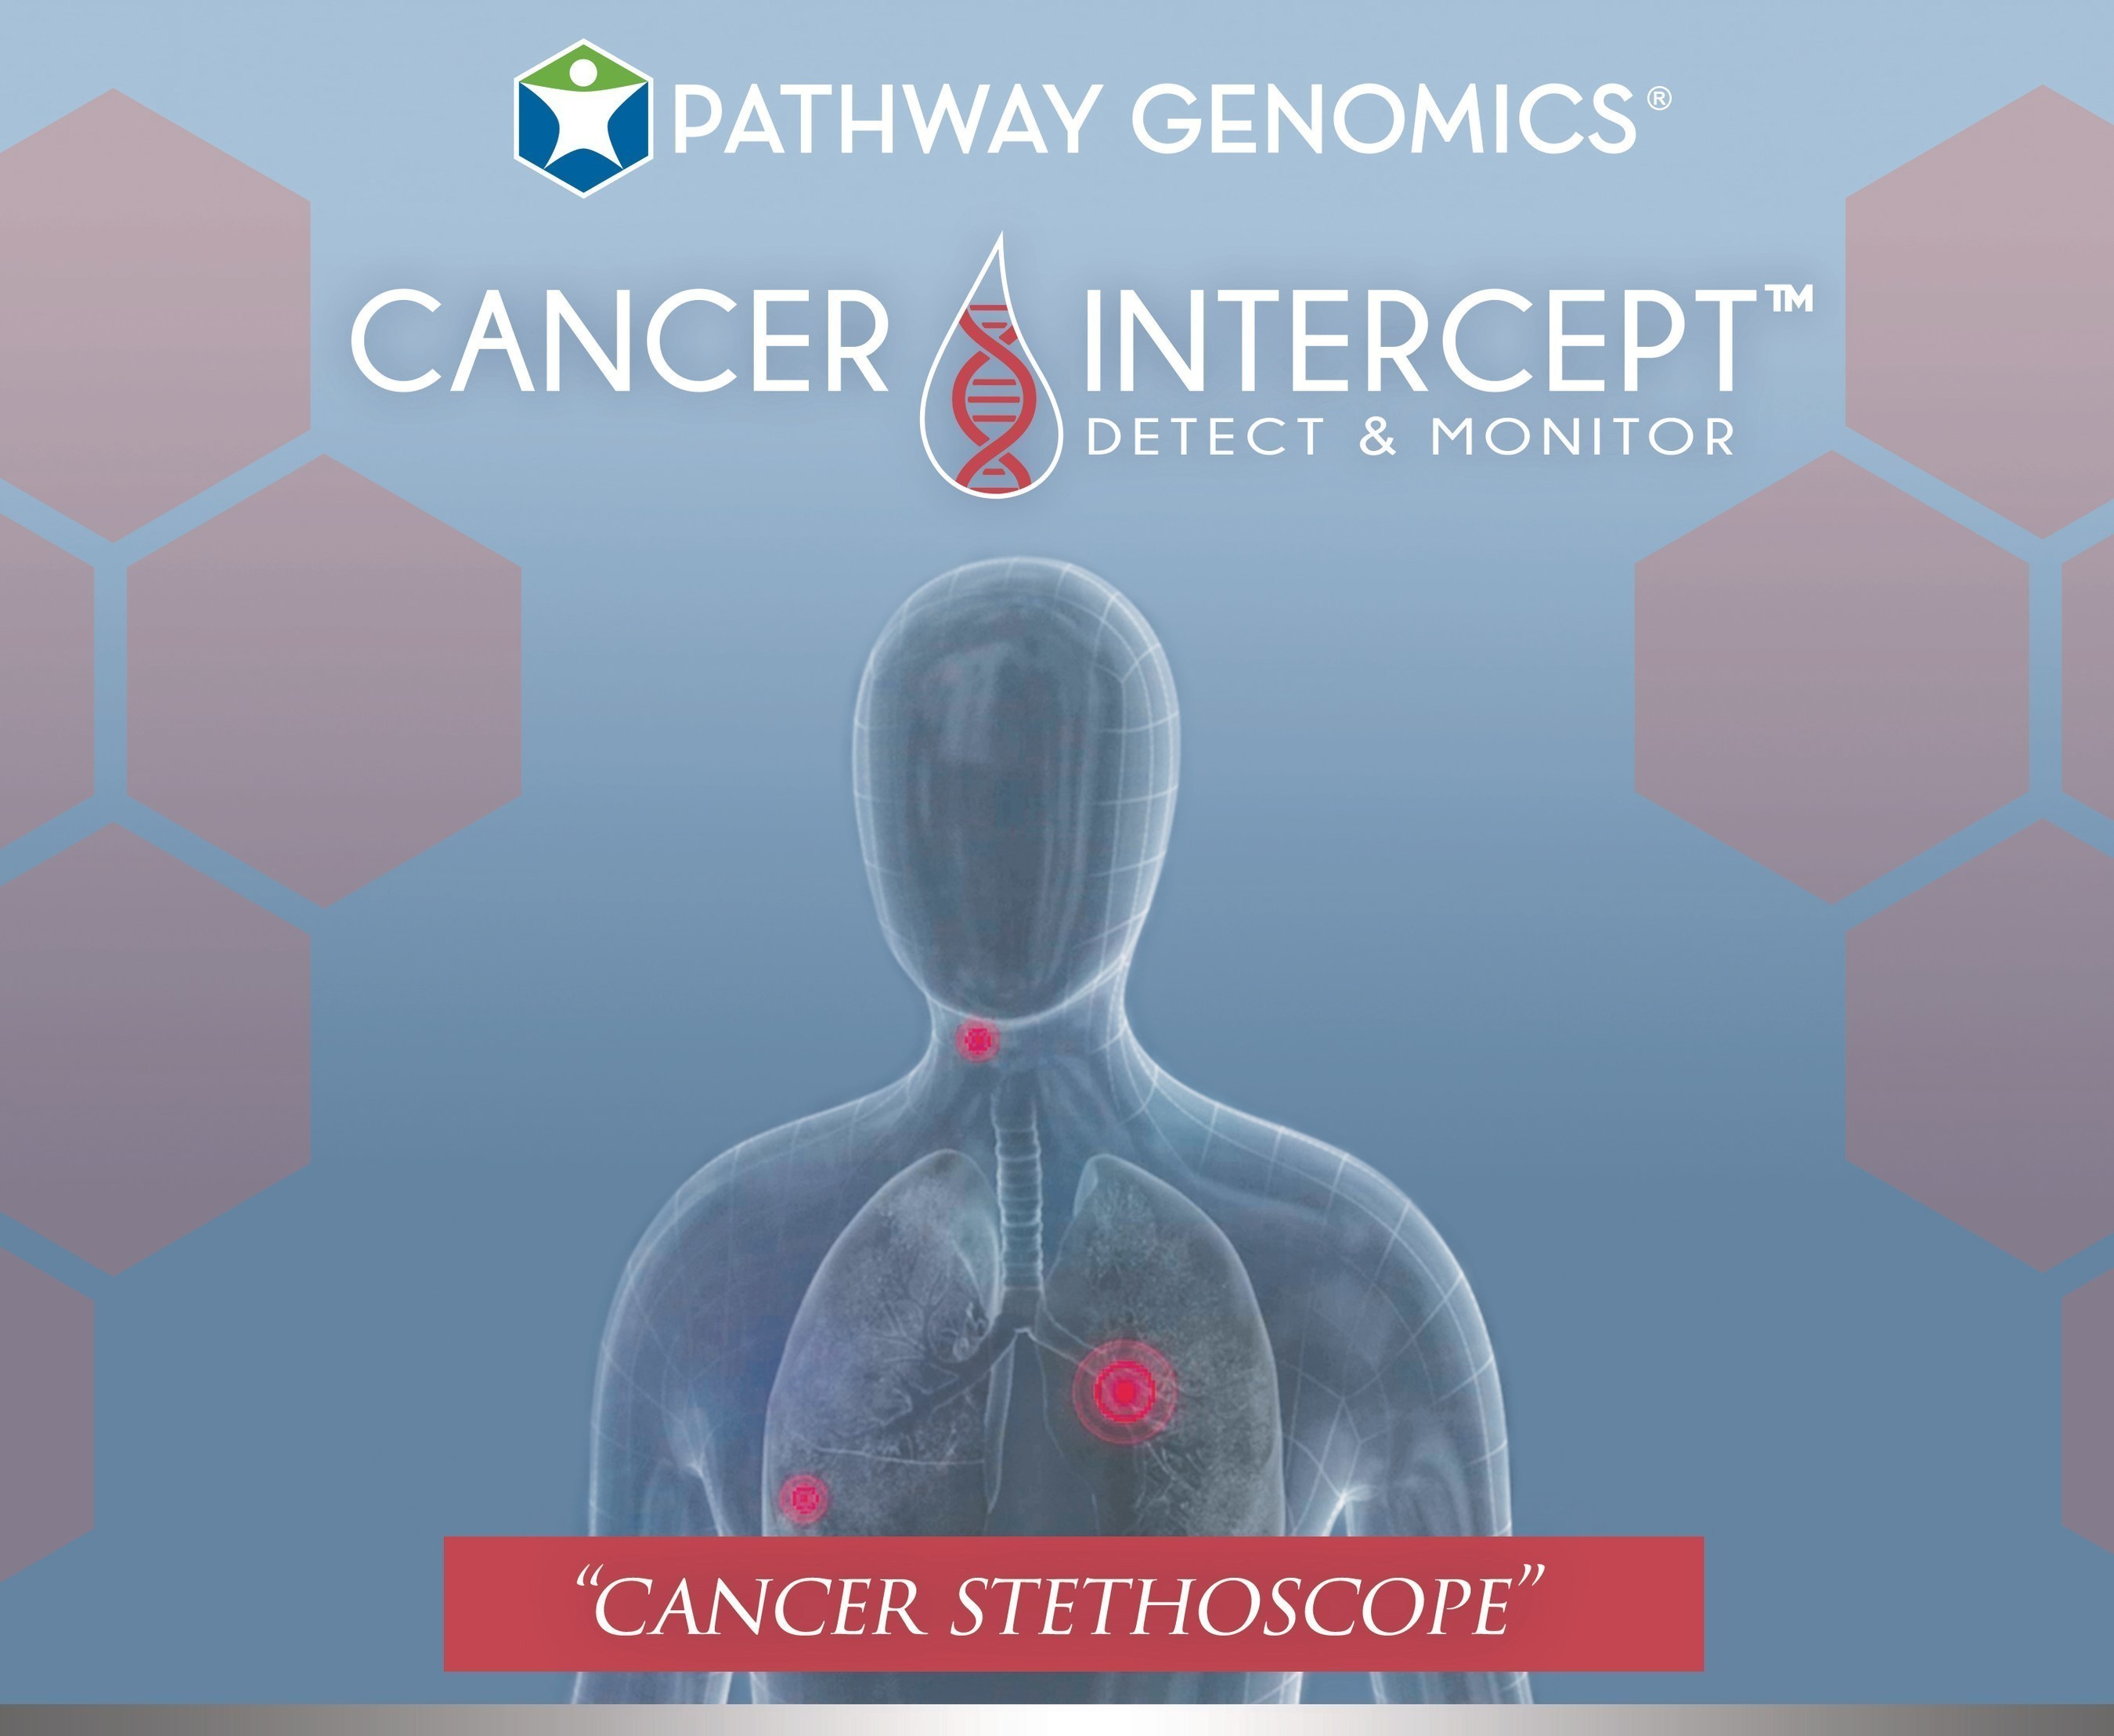 Pathway Genomics launches CancerIntercept, its first liquid biopsy, a non-invasive screening test designed for early cancer detection and monitoring.